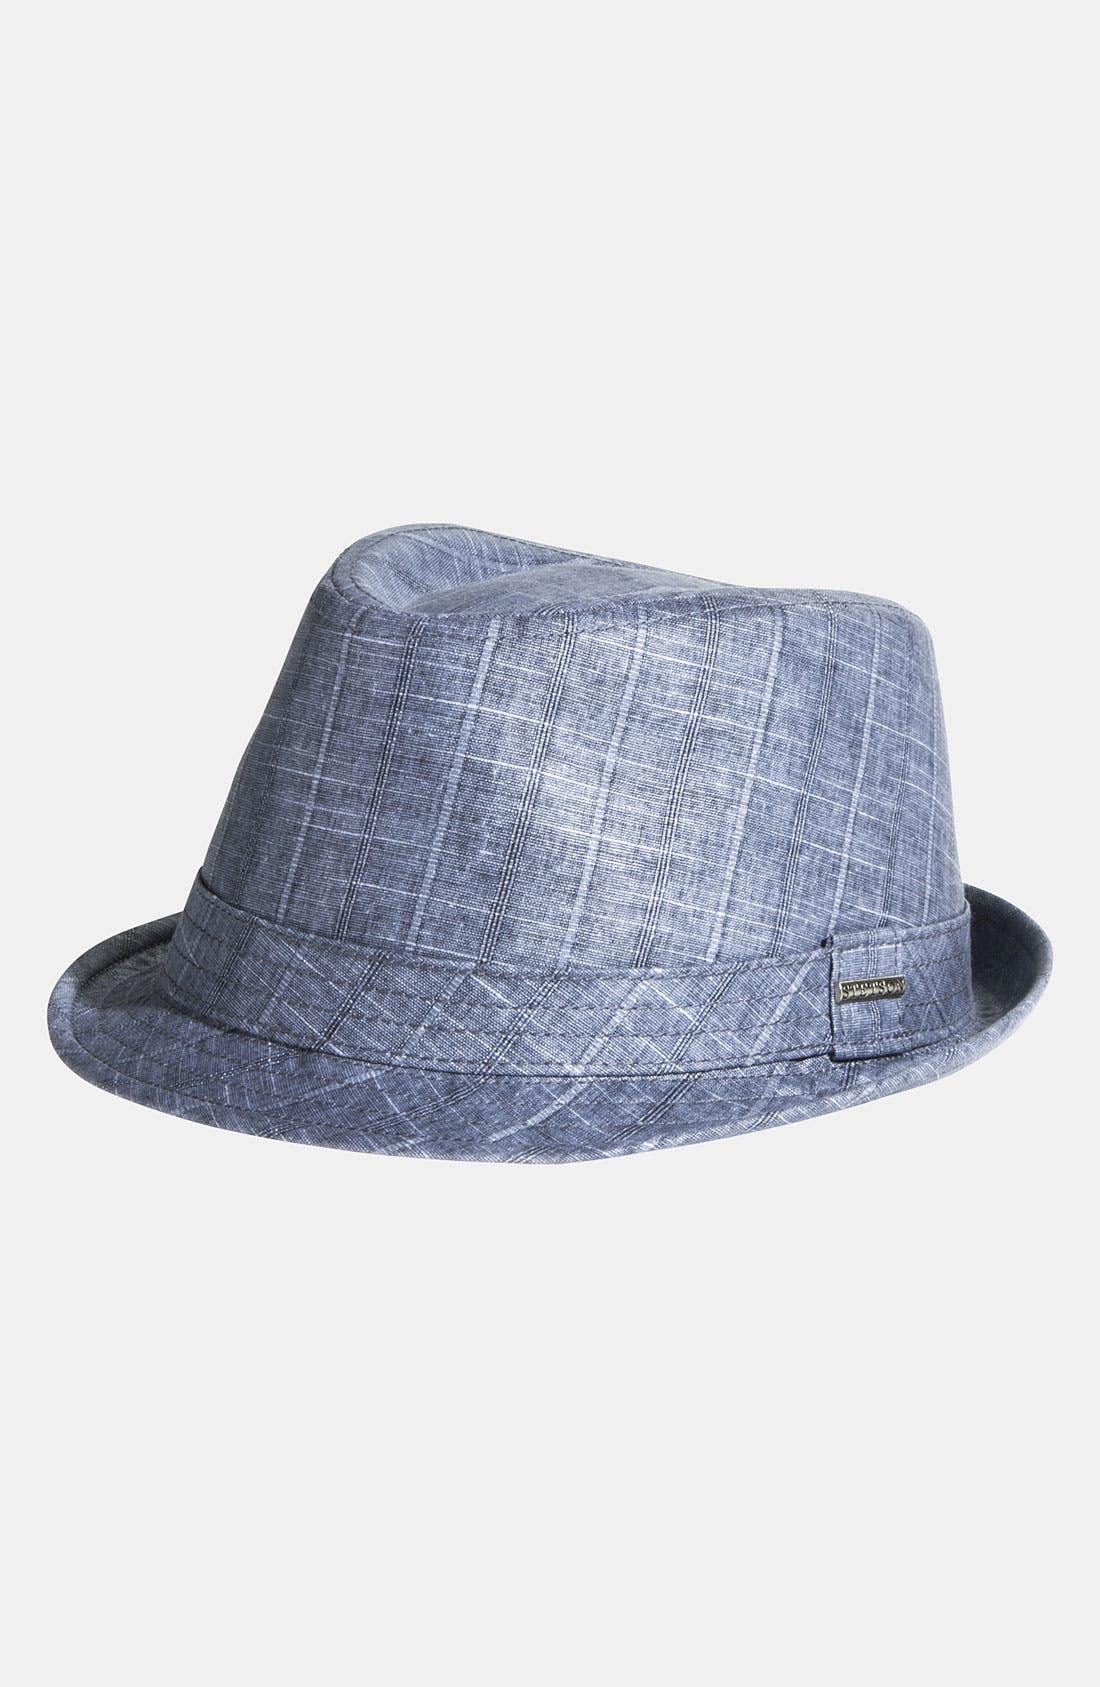 Alternate Image 1 Selected - Stetson 'Duckbill' Fedora